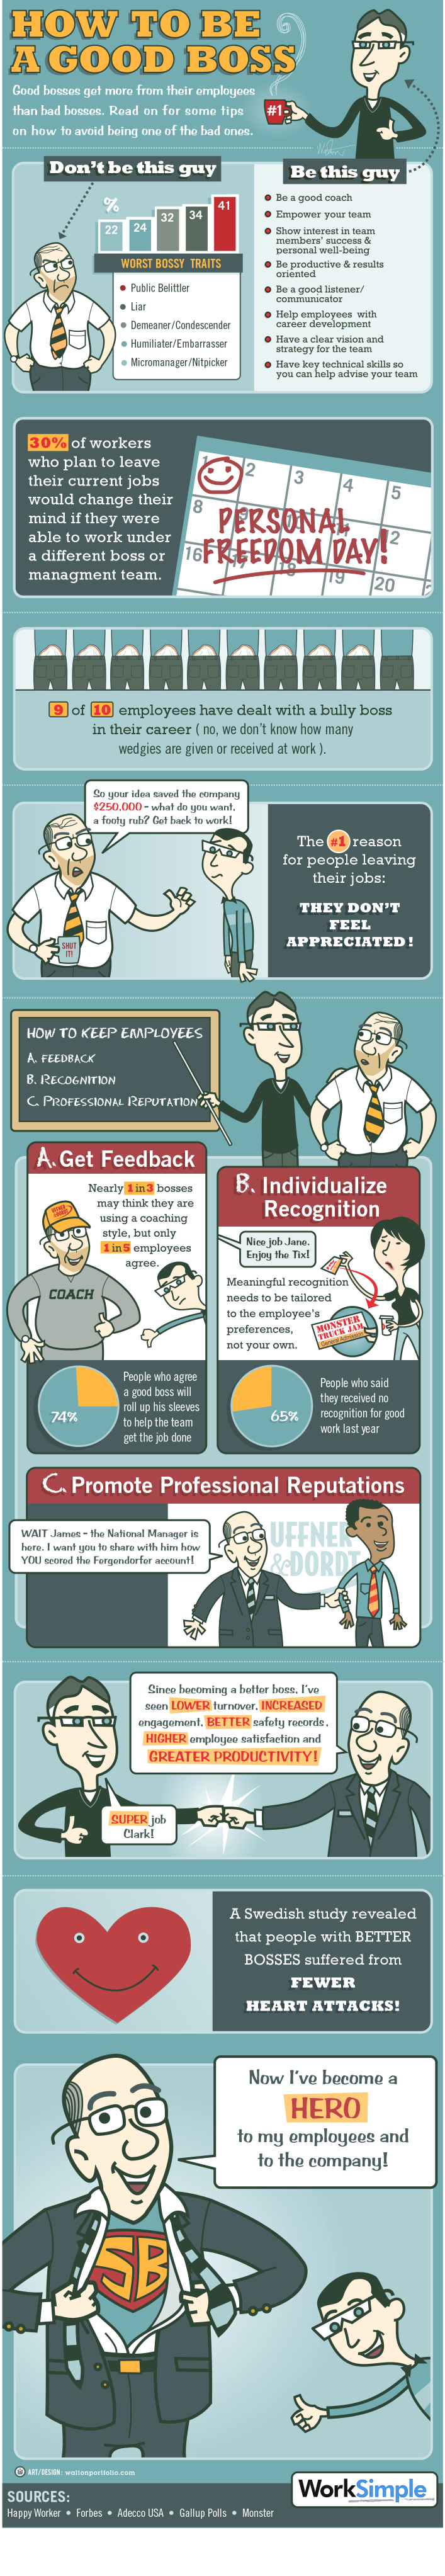 How To Be a Good Boss